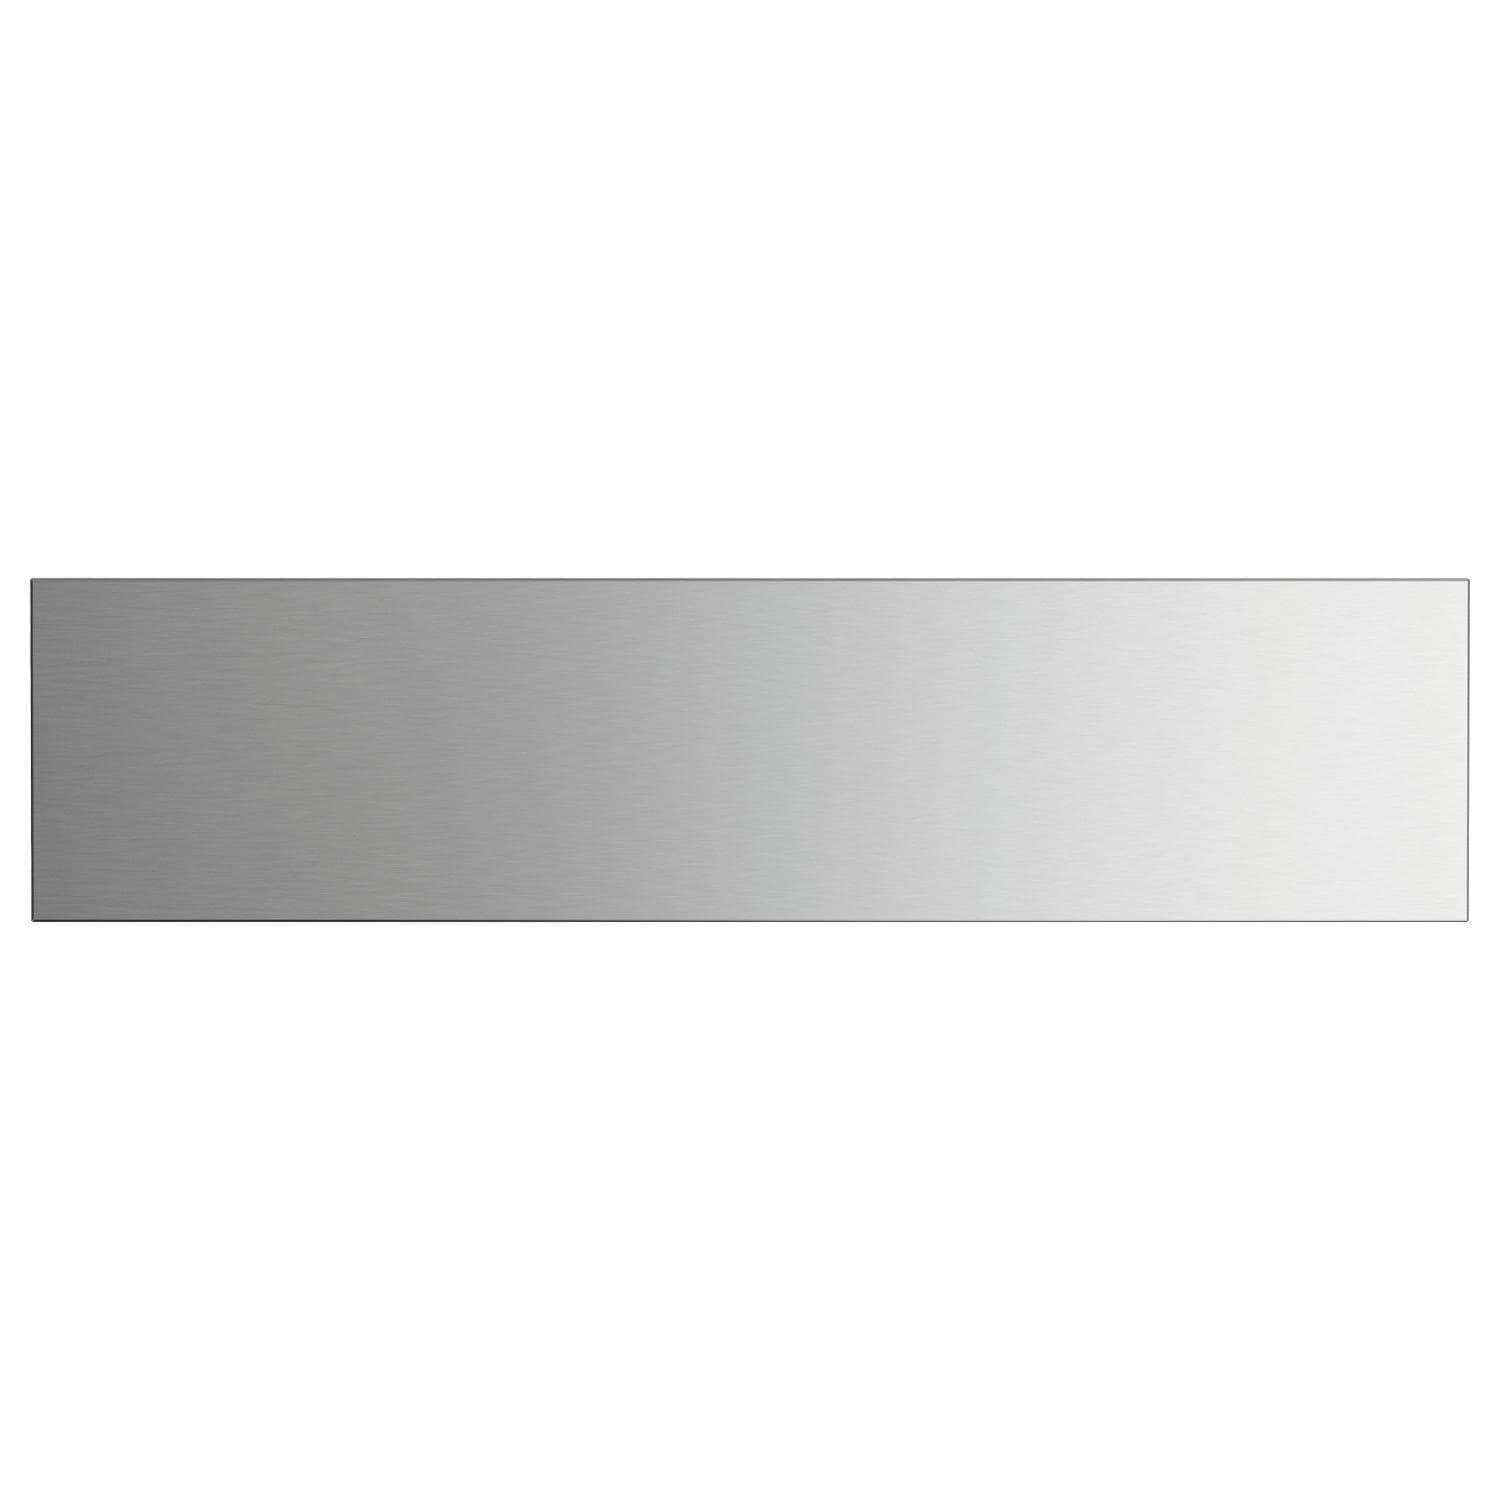 DCS 48-Inch Stainless Steel Low Backguard For Ranges - BGRV2-1248